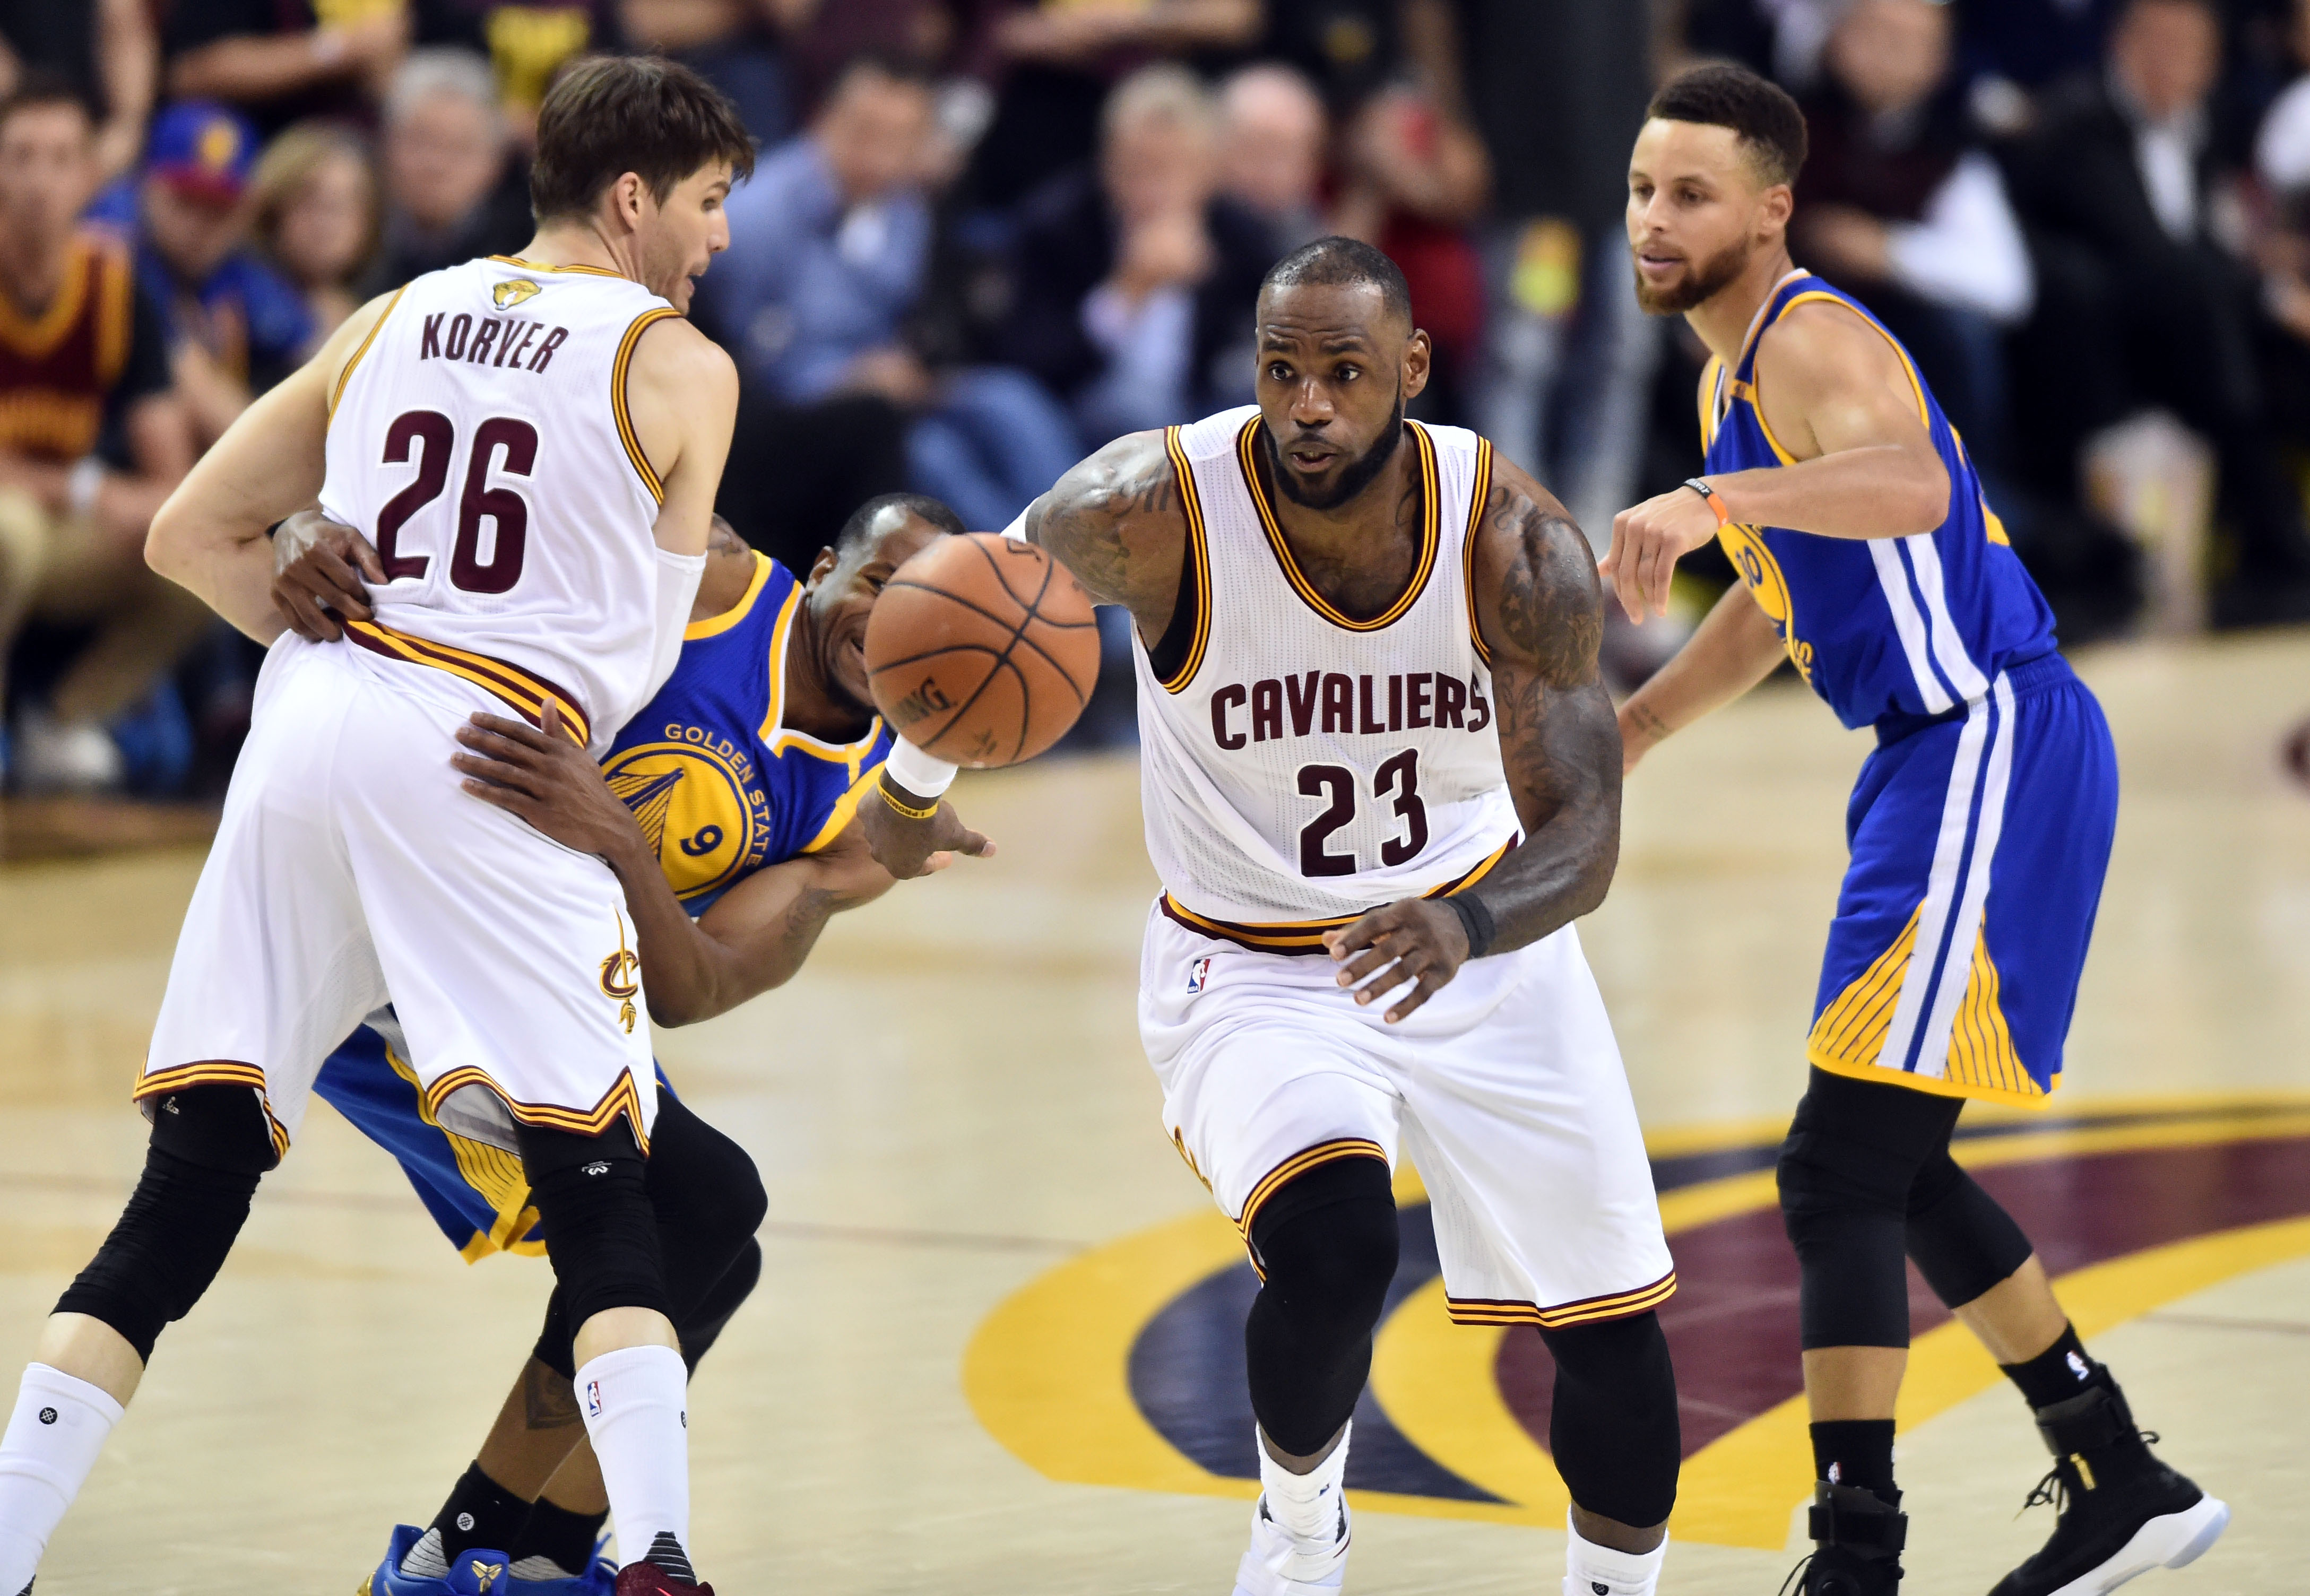 Golden State Warriors vs Cleveland Cavaliers Results - Page 2